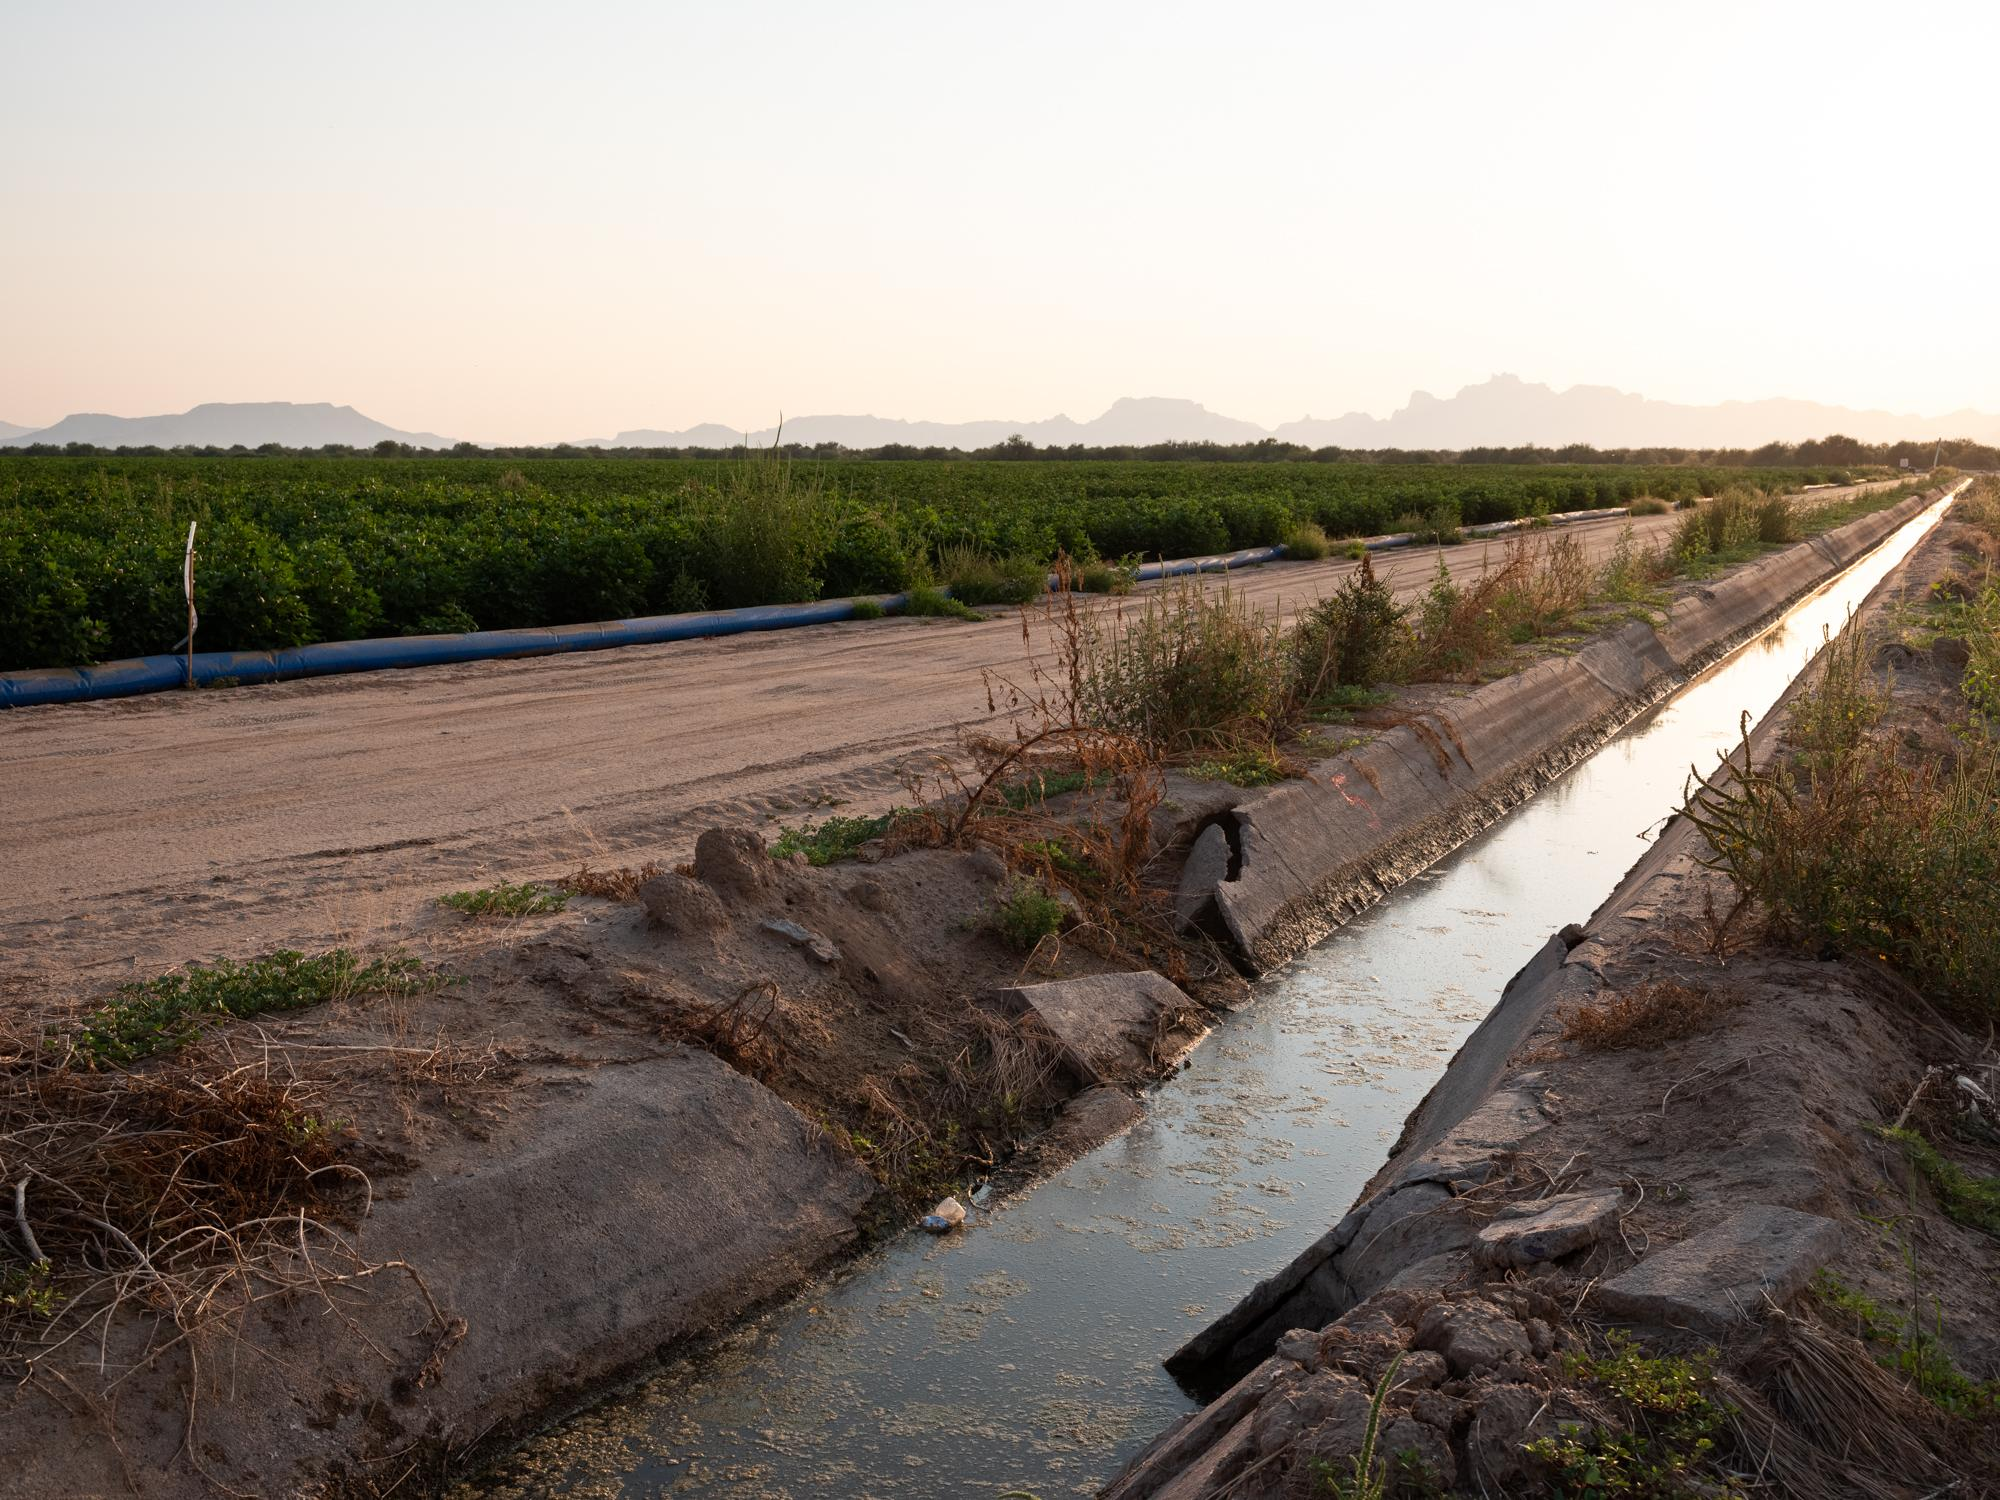 A canal with a flood irrigation system is on the right. For comparison, the cotton field on the left of the road is irrigated with N-Drip system.